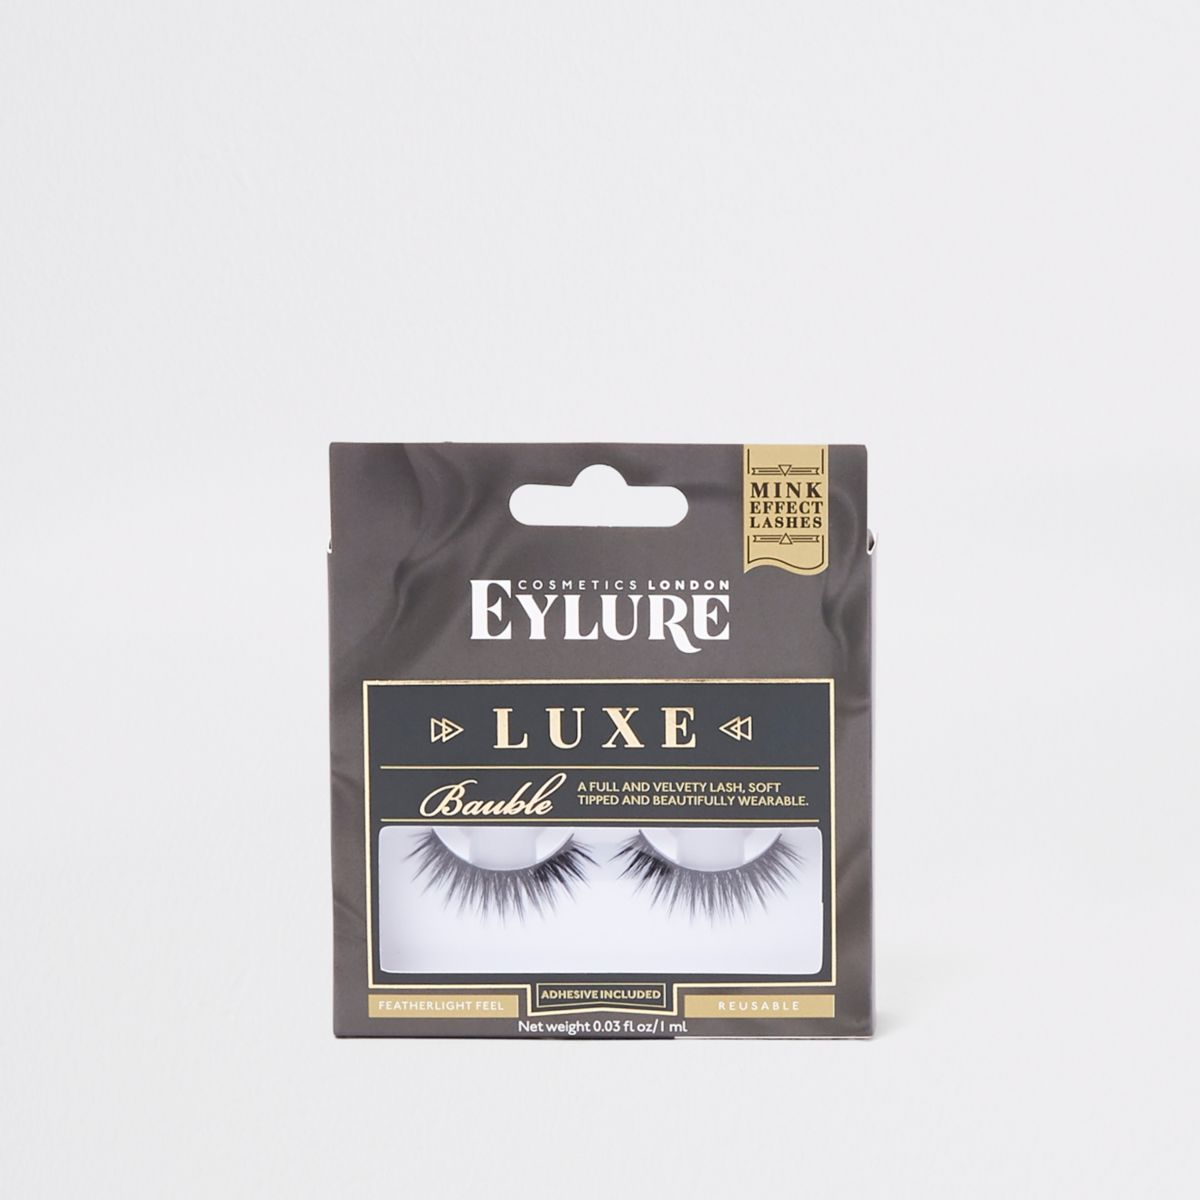 Eylure Luxe Collection Bauble fasle eyelashes